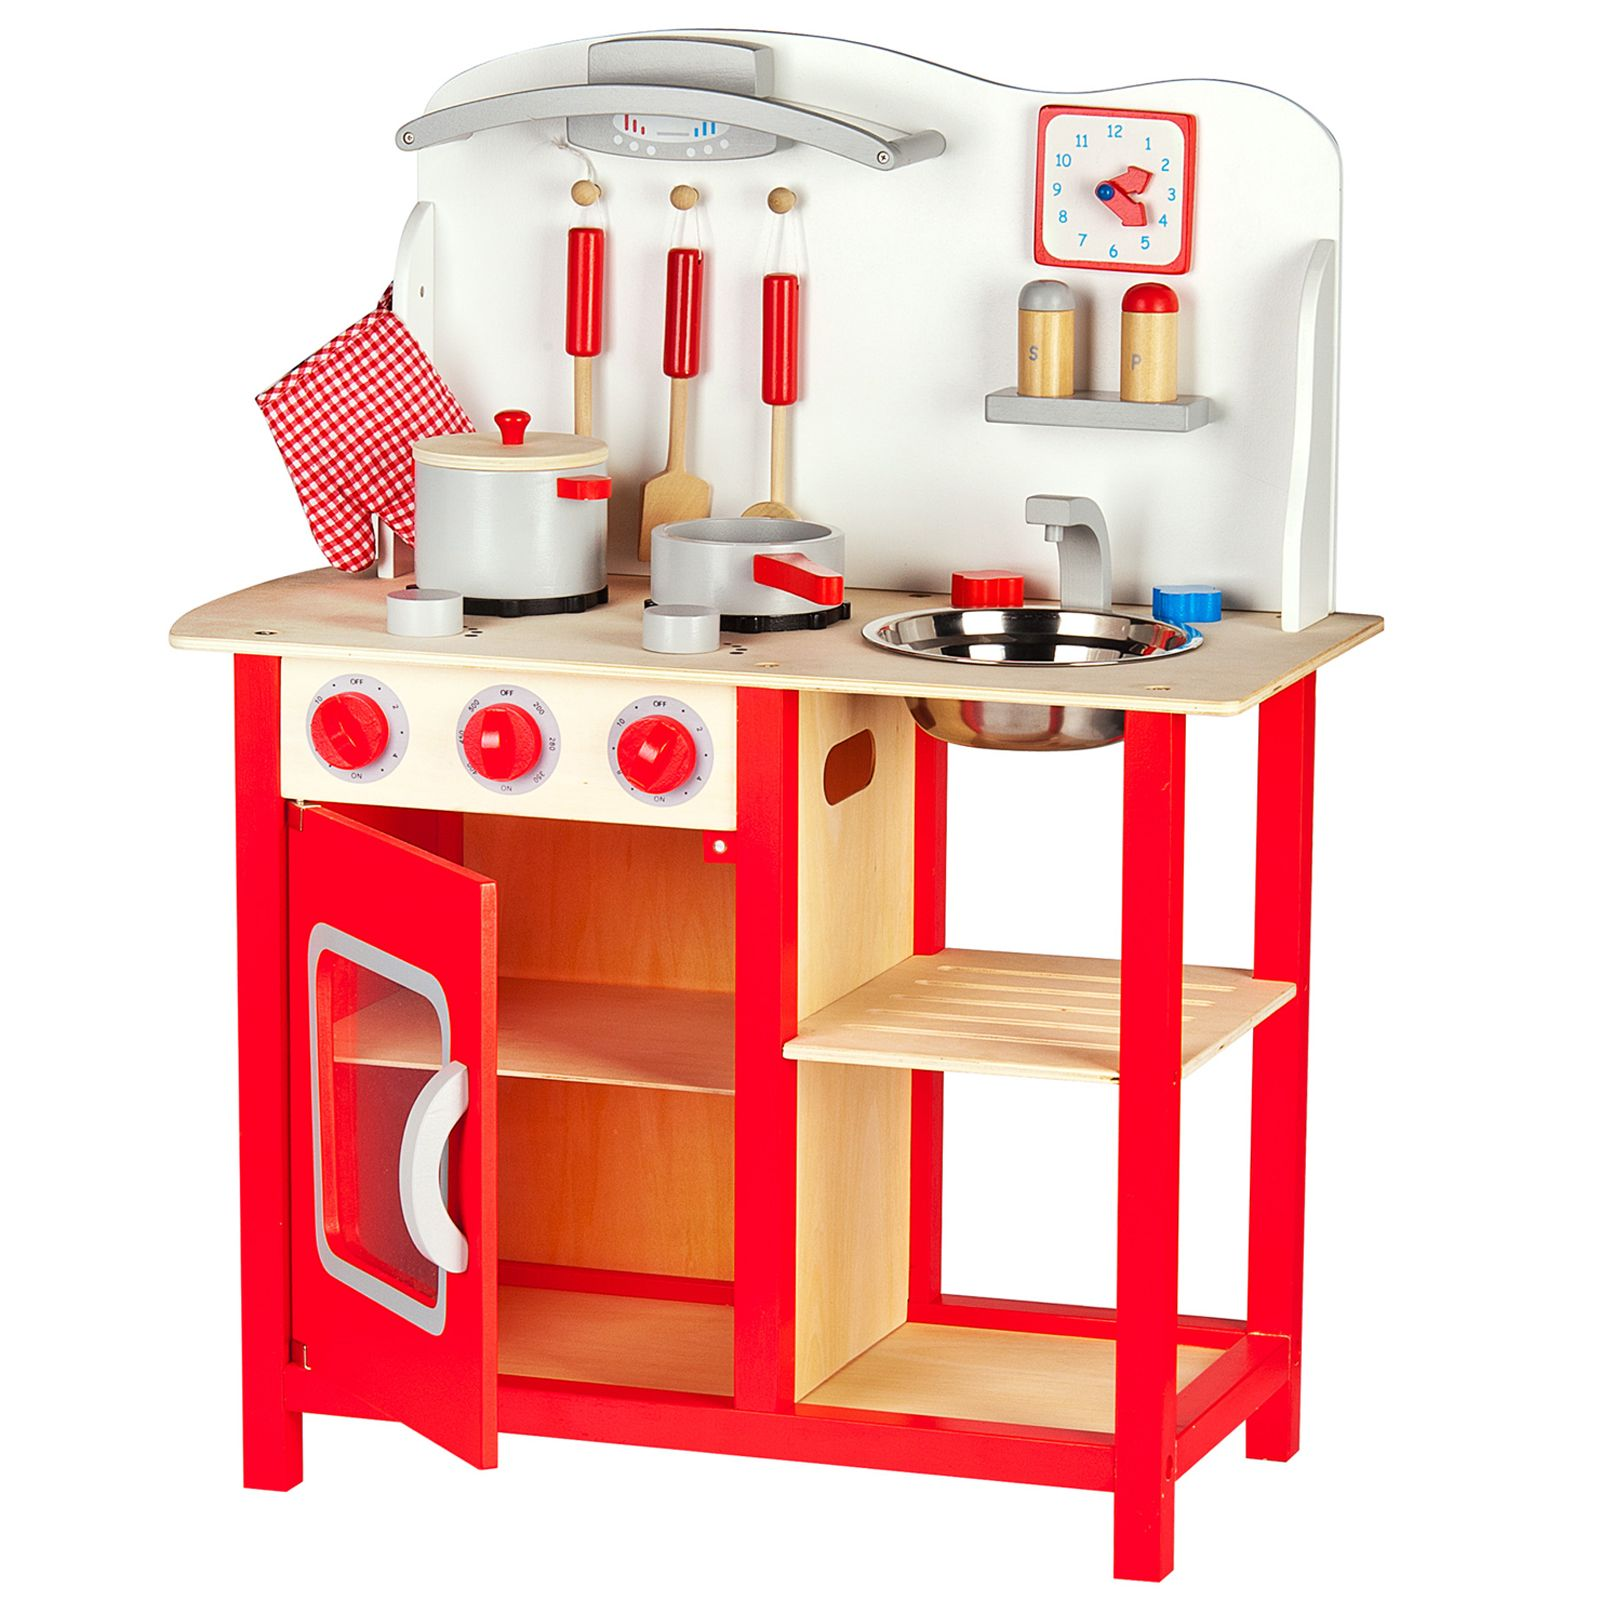 Wooden Kitchen Accessories ~ Leomark wooden kitchen childrens play with